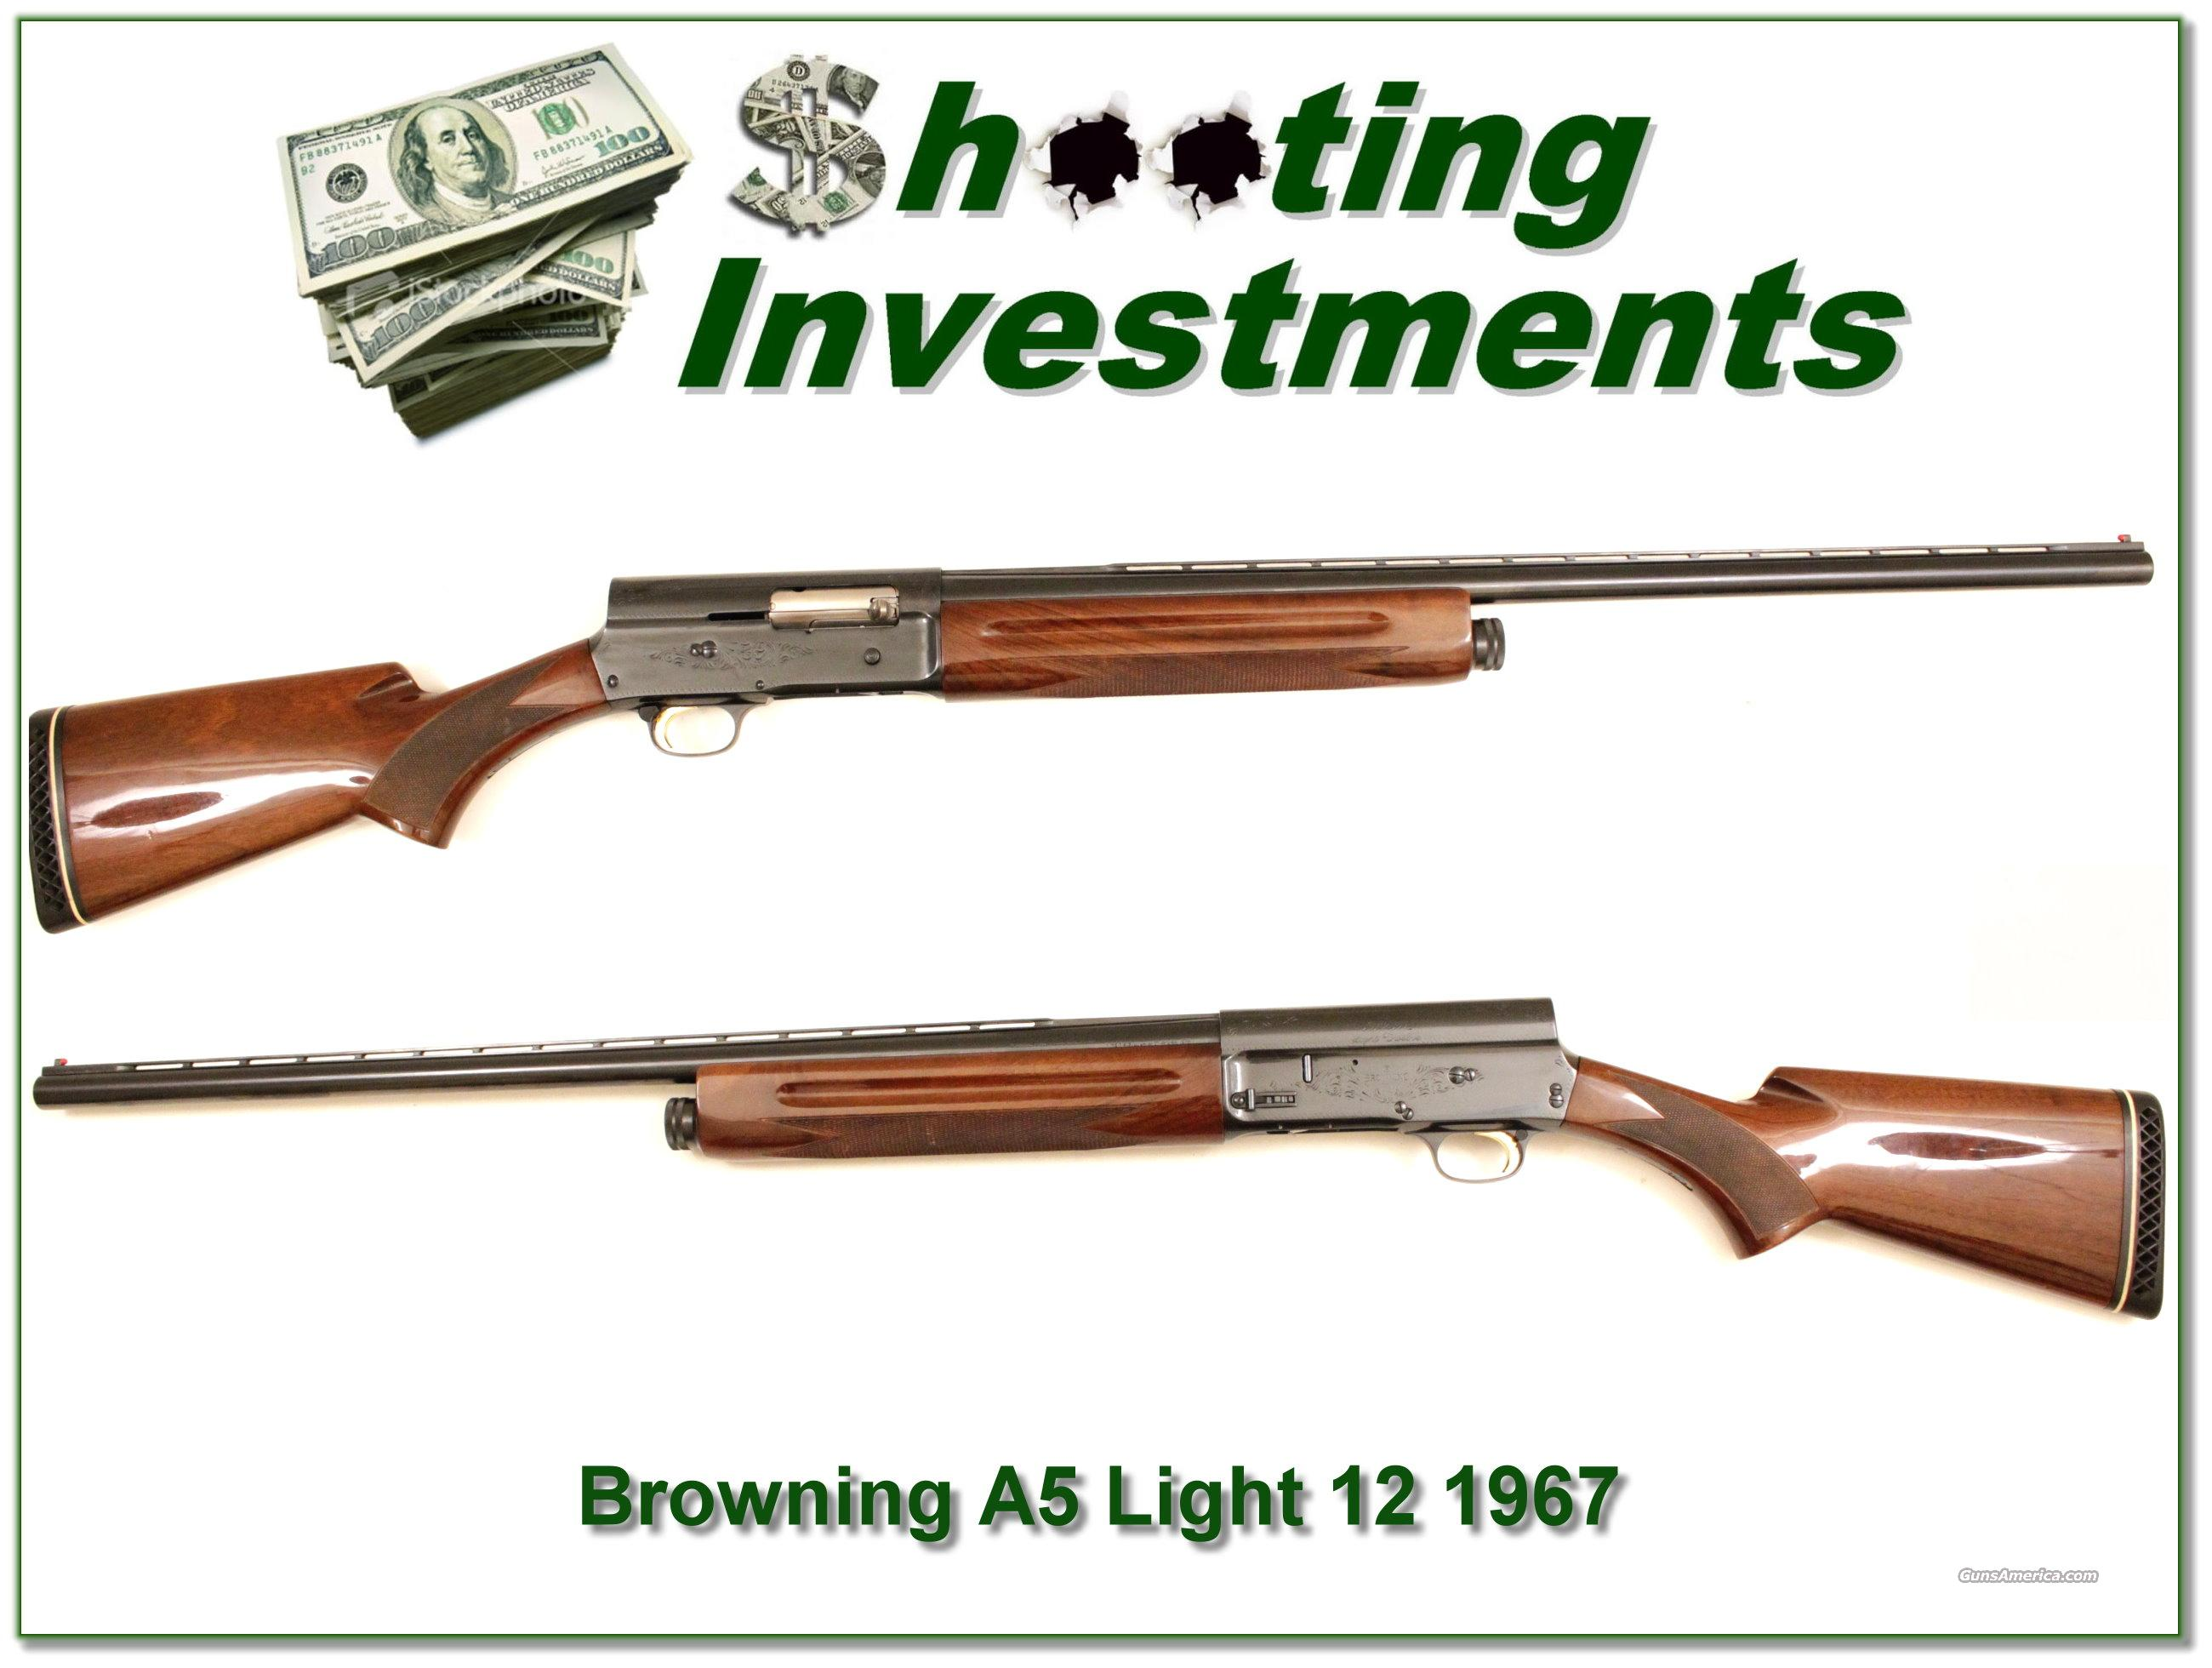 Browning A5 light 12 '67 Belgium vent rib  Guns > Shotguns > Browning Shotguns > Autoloaders > Hunting